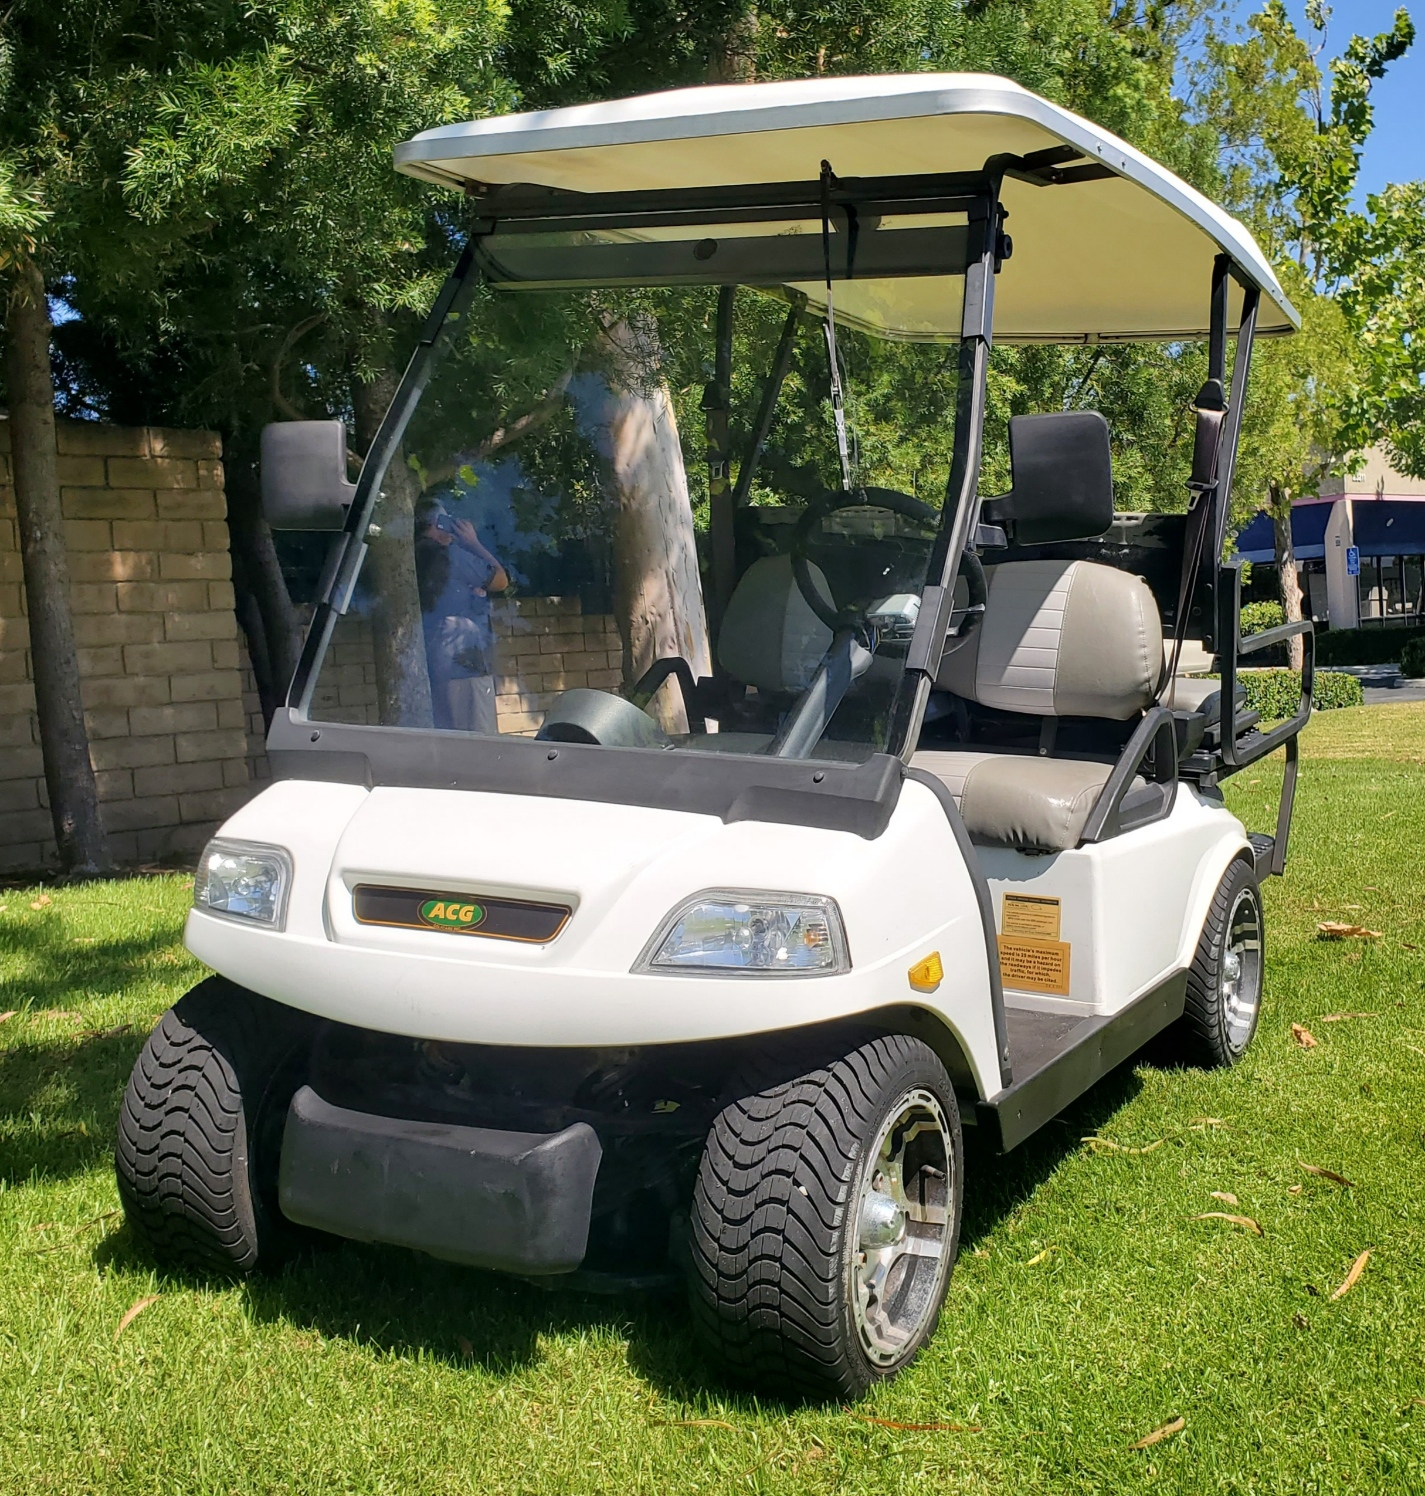 2000 ACG 48V Electric 4 Passenger Golf Cart Street Legal